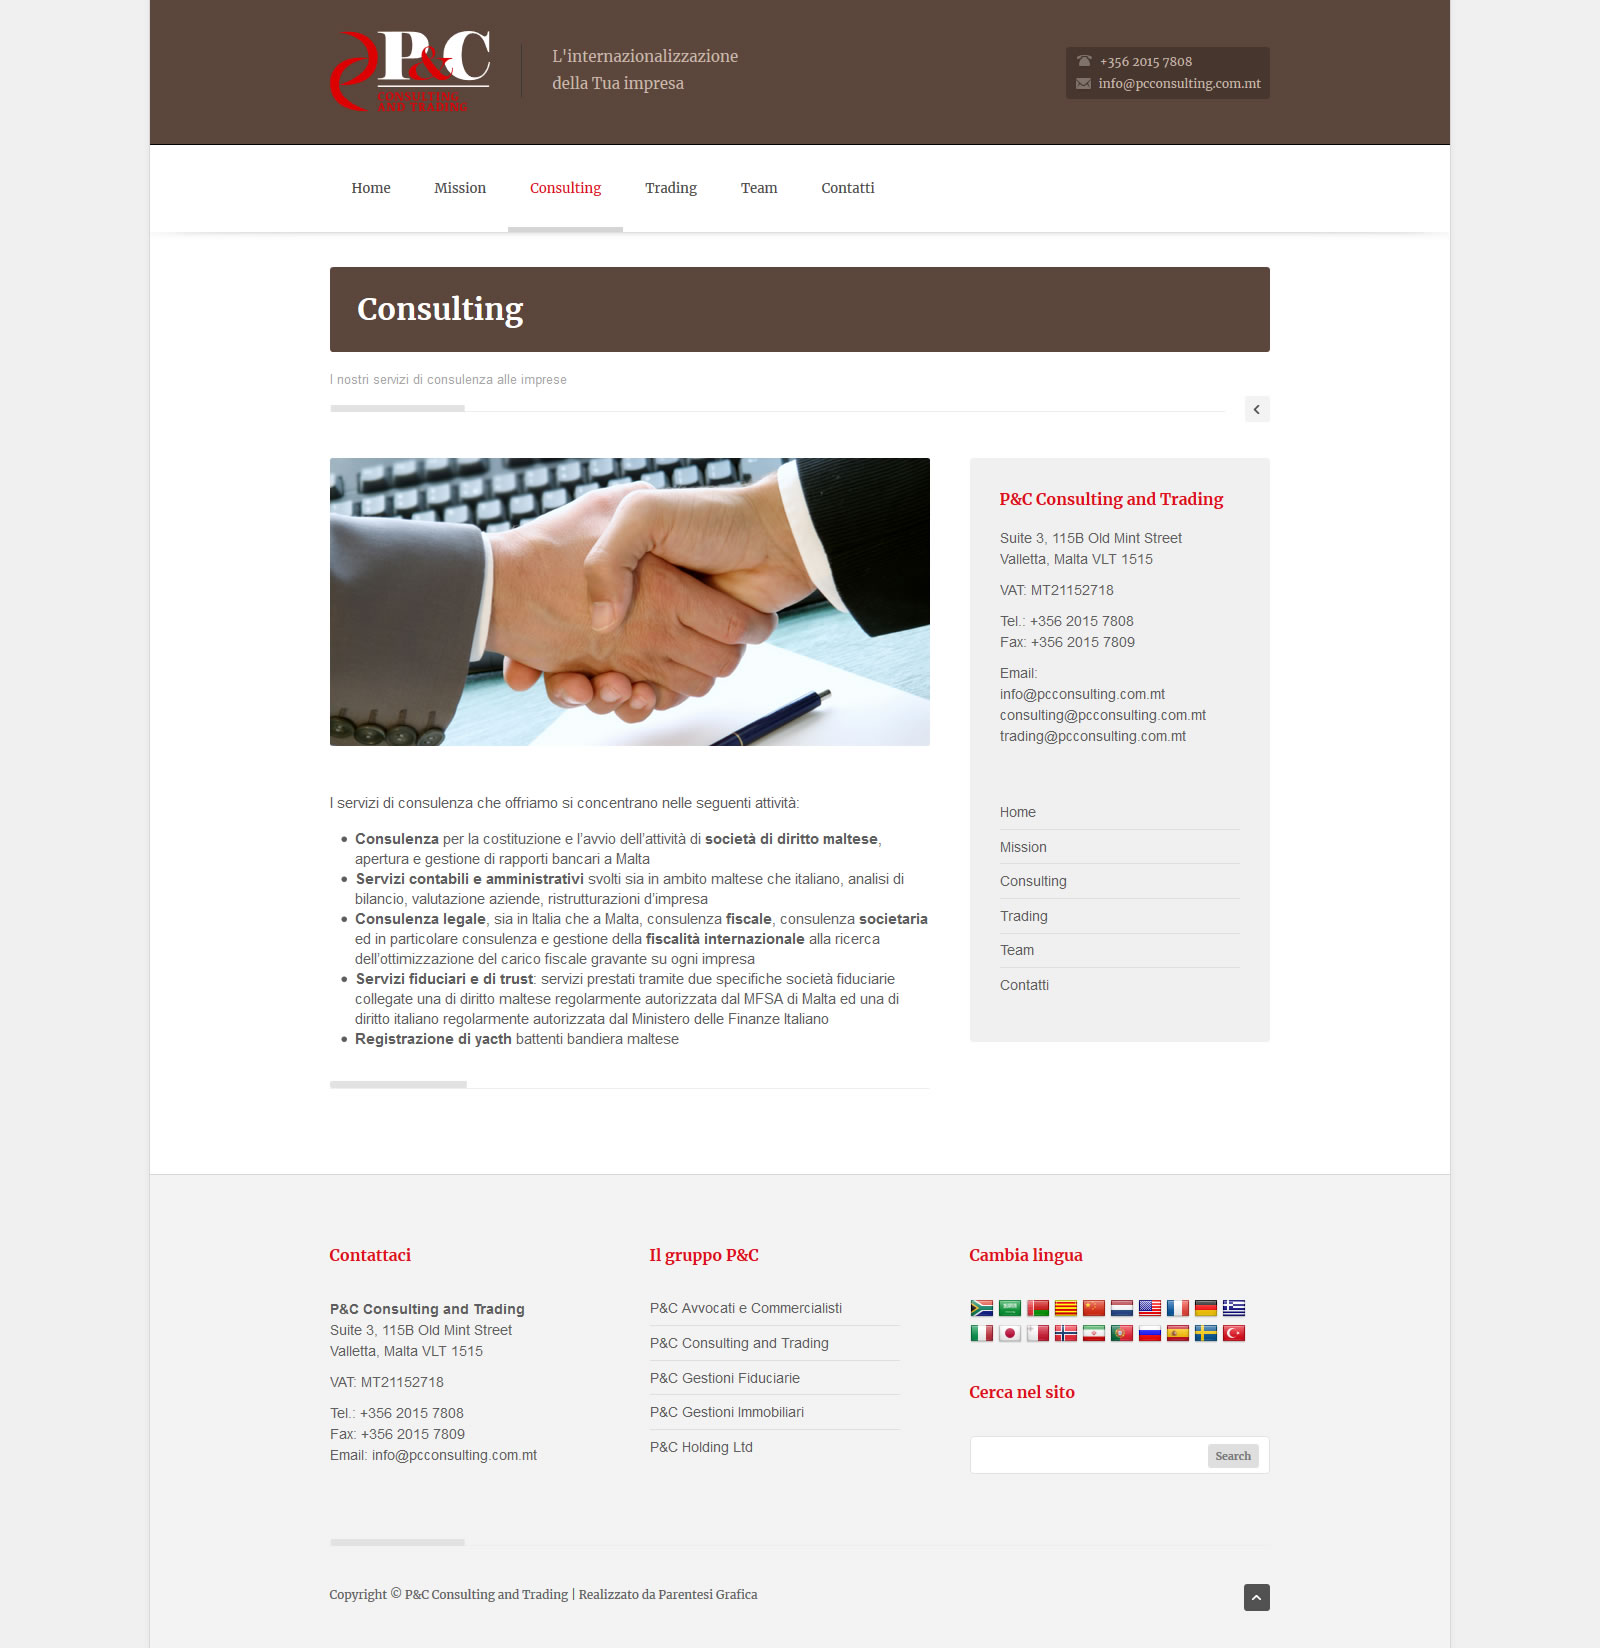 Sito web P&C Consulting and Trading - Consulting page